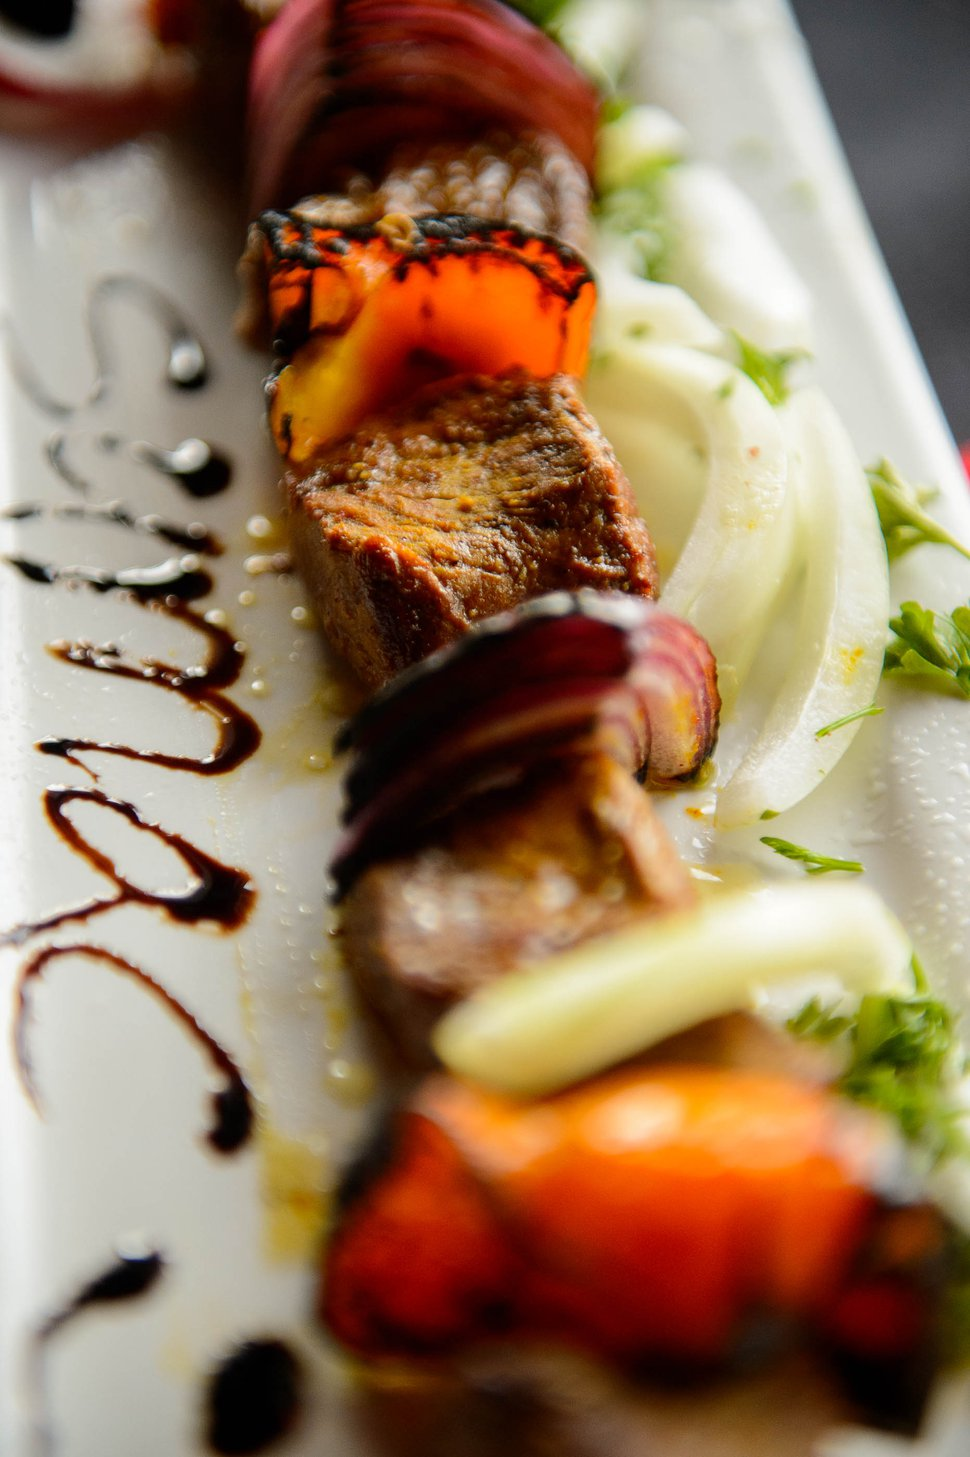 (Trent Nelson | The Salt Lake Tribune) Shish Kabob at Sumac Cafe, a new Persian Restaurant in Cottonwood Heights on Friday May 31, 2019.